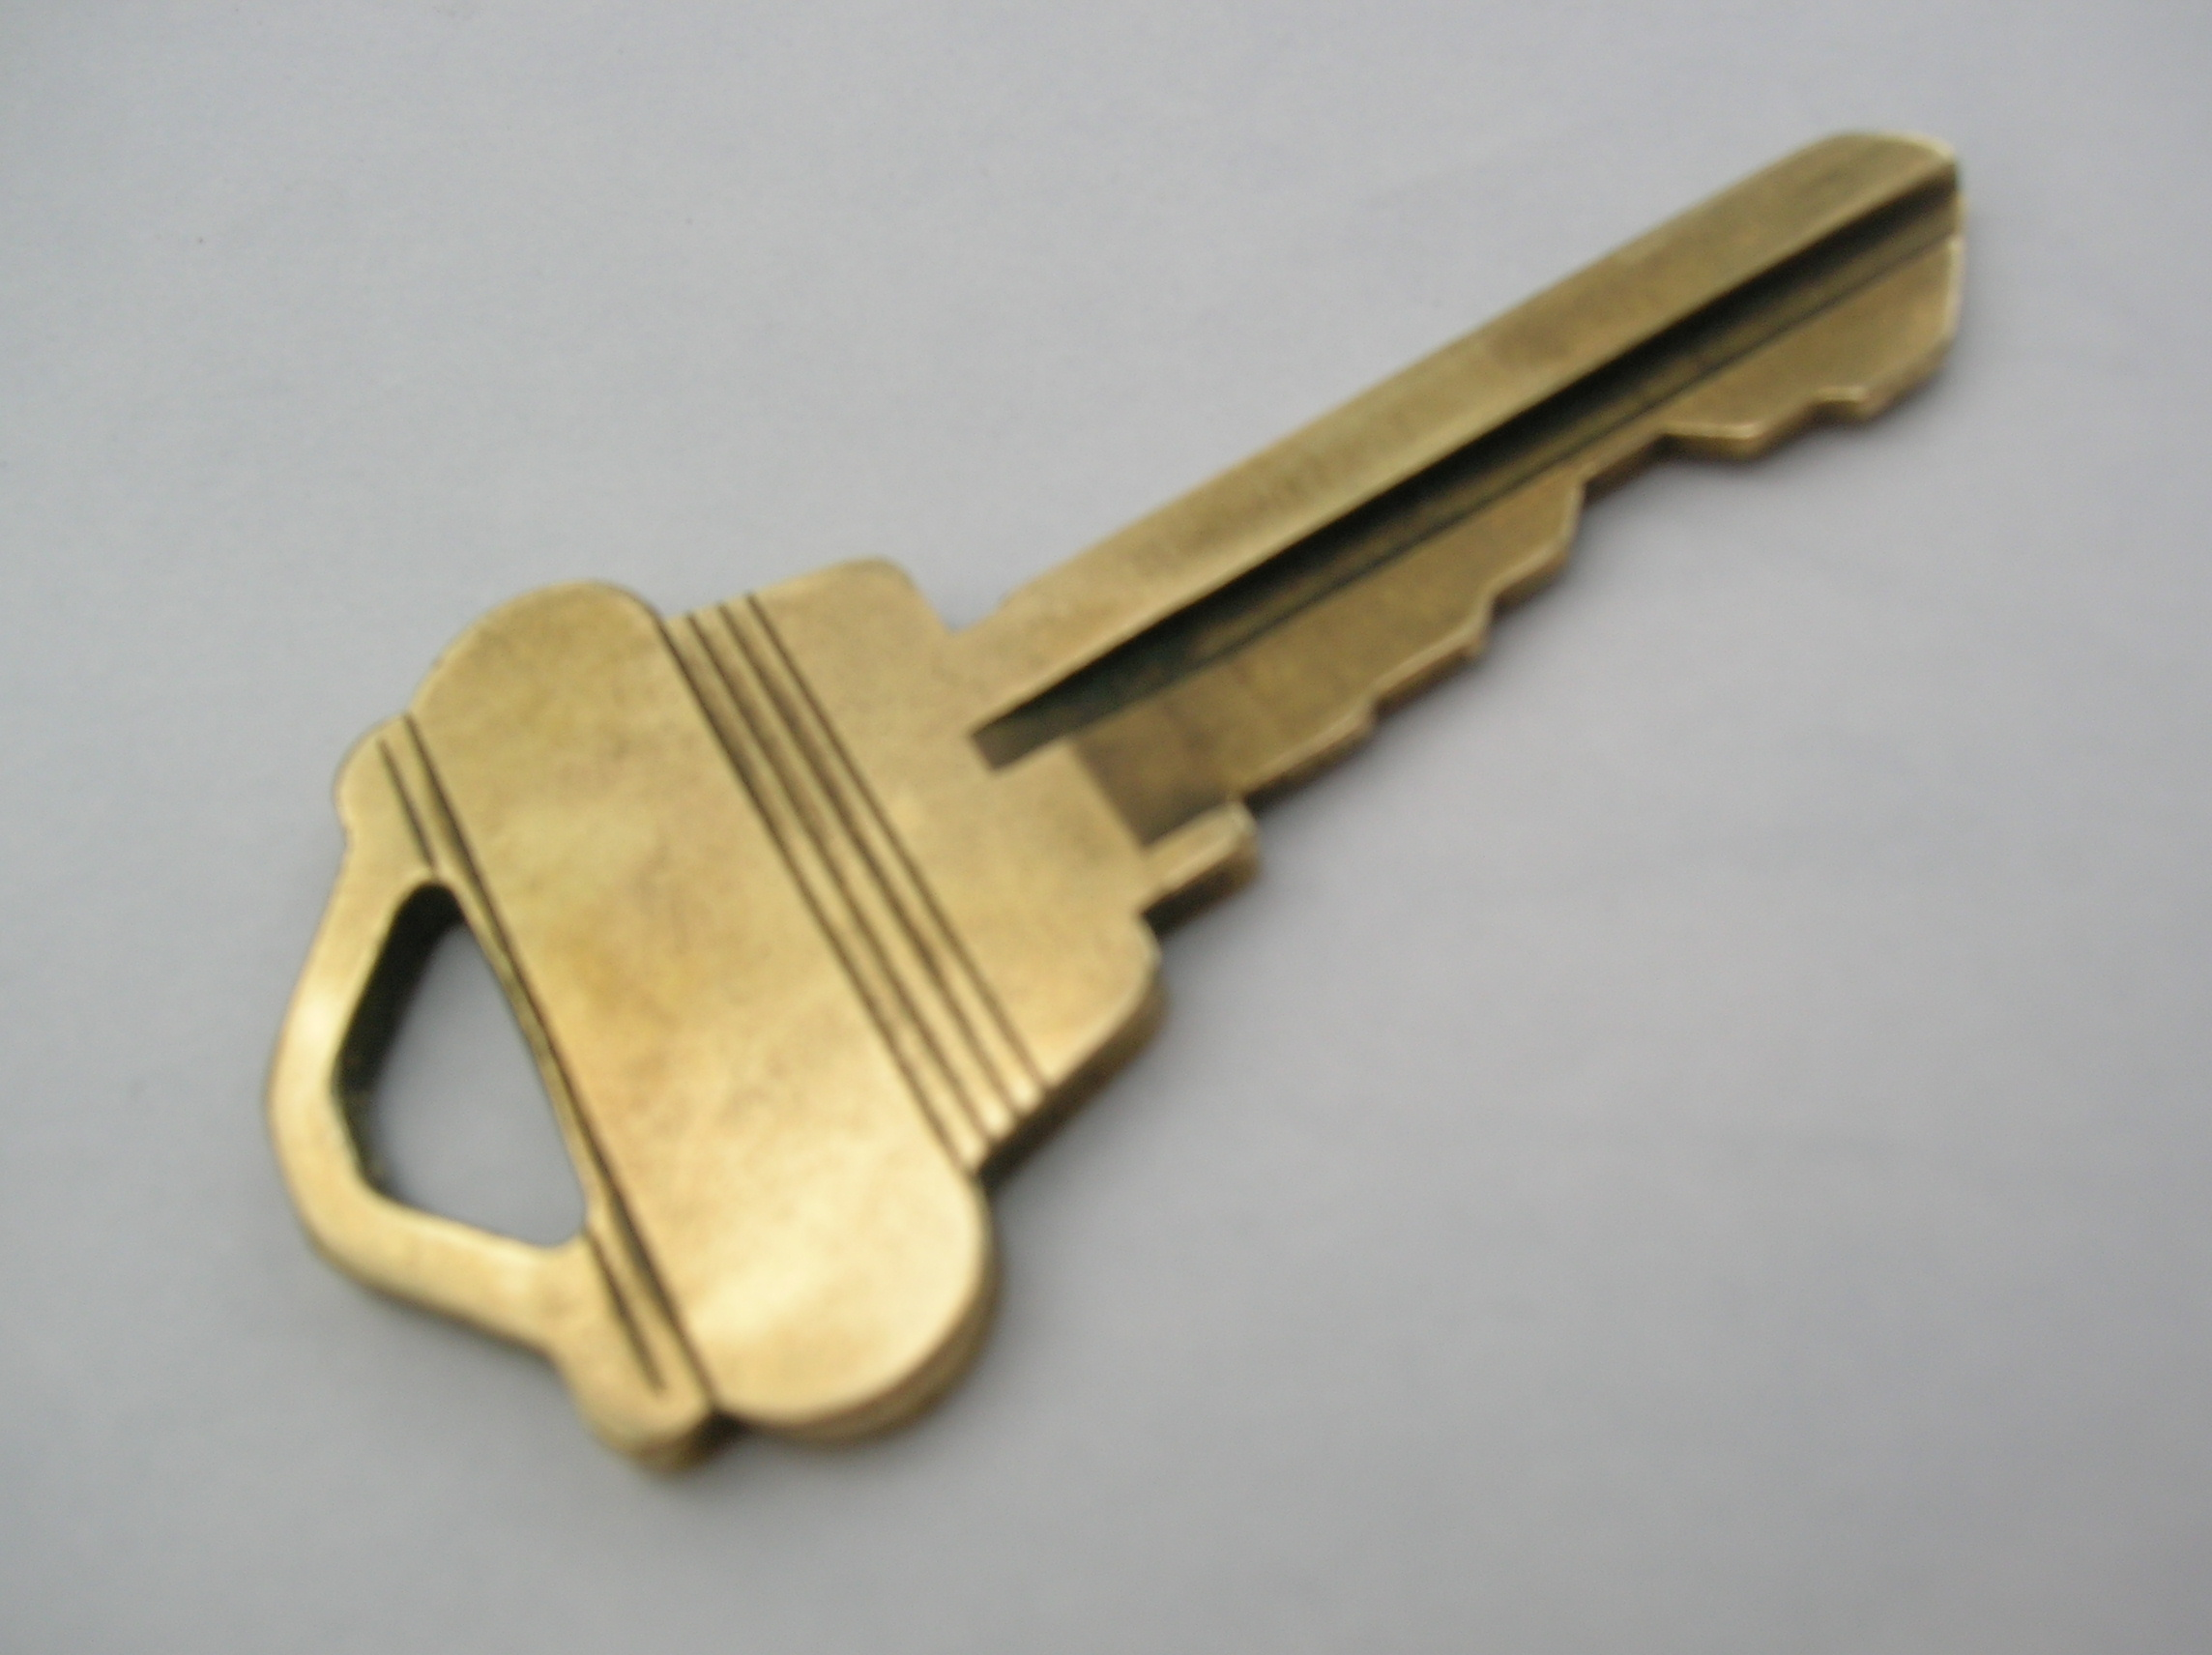 http://upload.wikimedia.org/wikipedia/commons/3/3c/House_key.jpg